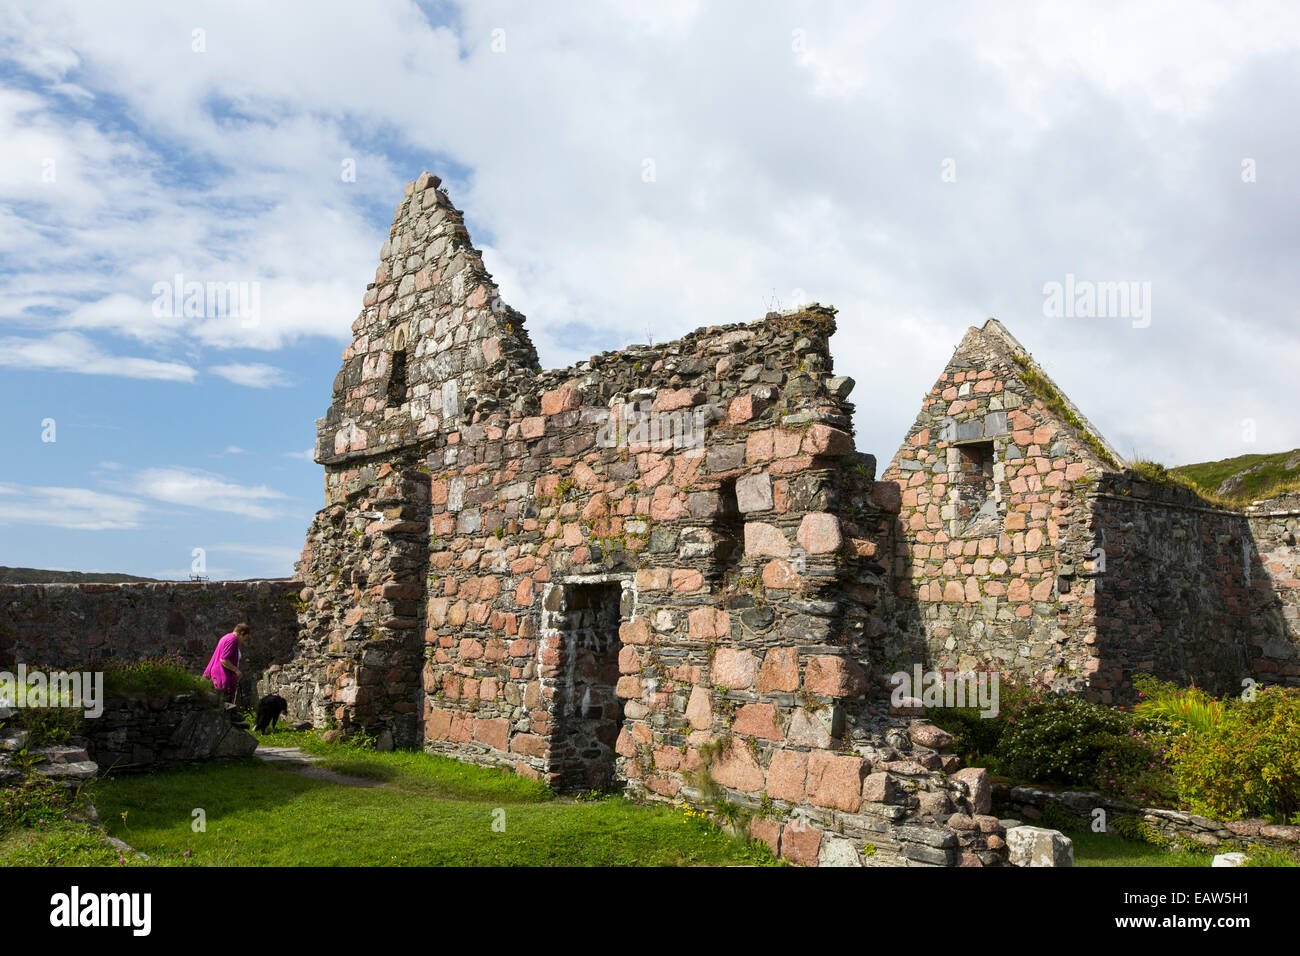 The Augustinian medieval nunnery on the Isle of iona, it is the oldest preserved nunnery in the British Isles, constructed - Stock Image